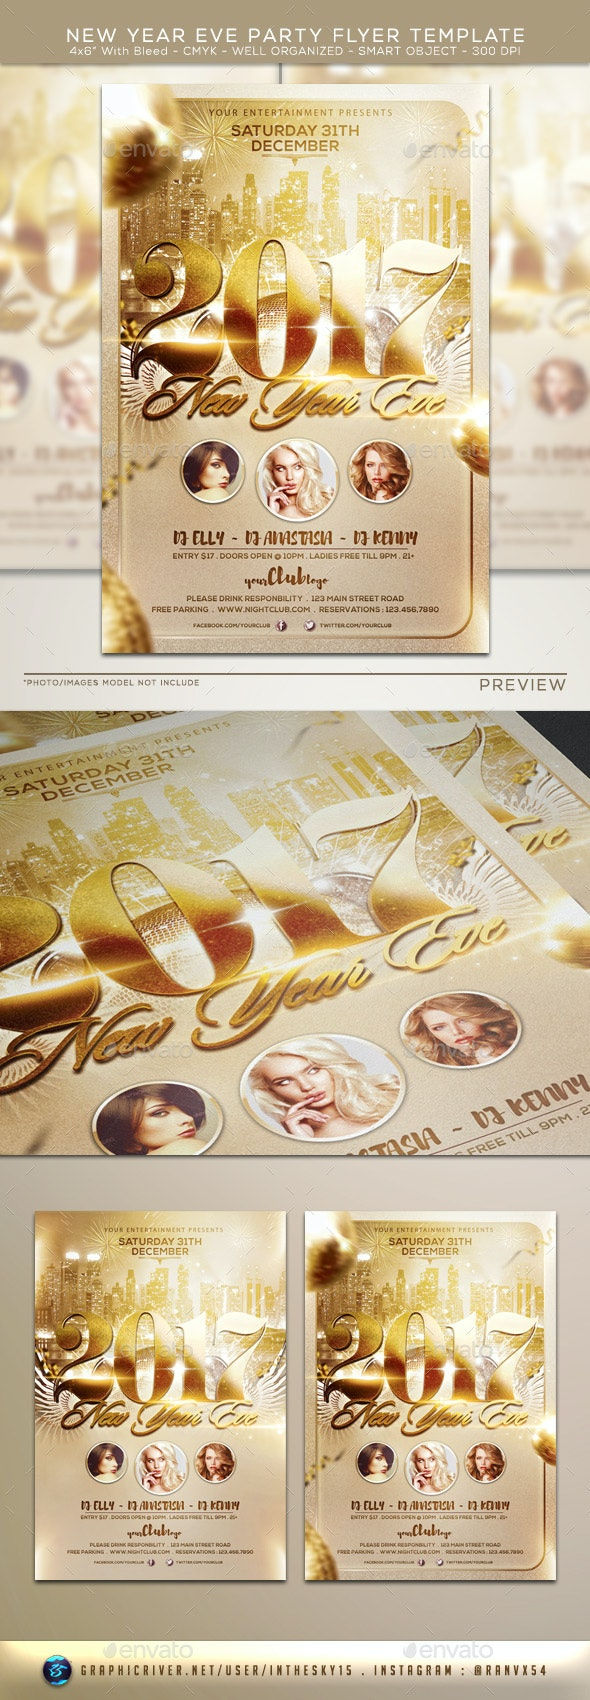 New Year Eve Party Flyer Template - Flyers Print Templates